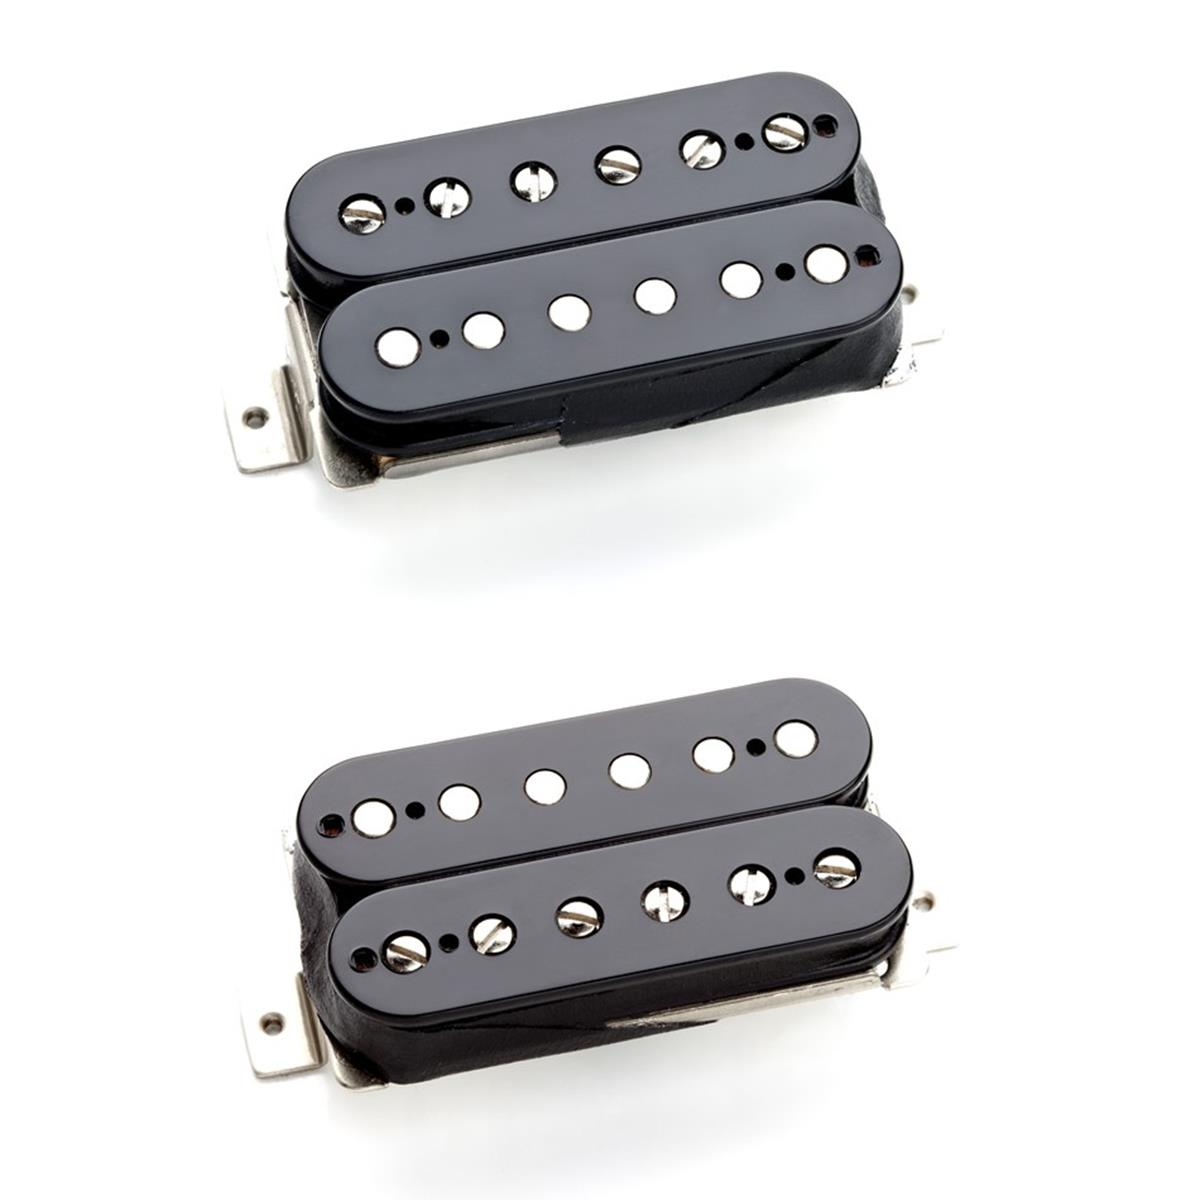 SEYMOUR-DUNCAN 59 MODEL VINTAGE BLUES SET BRIDGE SH 1 B + NECK SH 1 N  11108-05-B